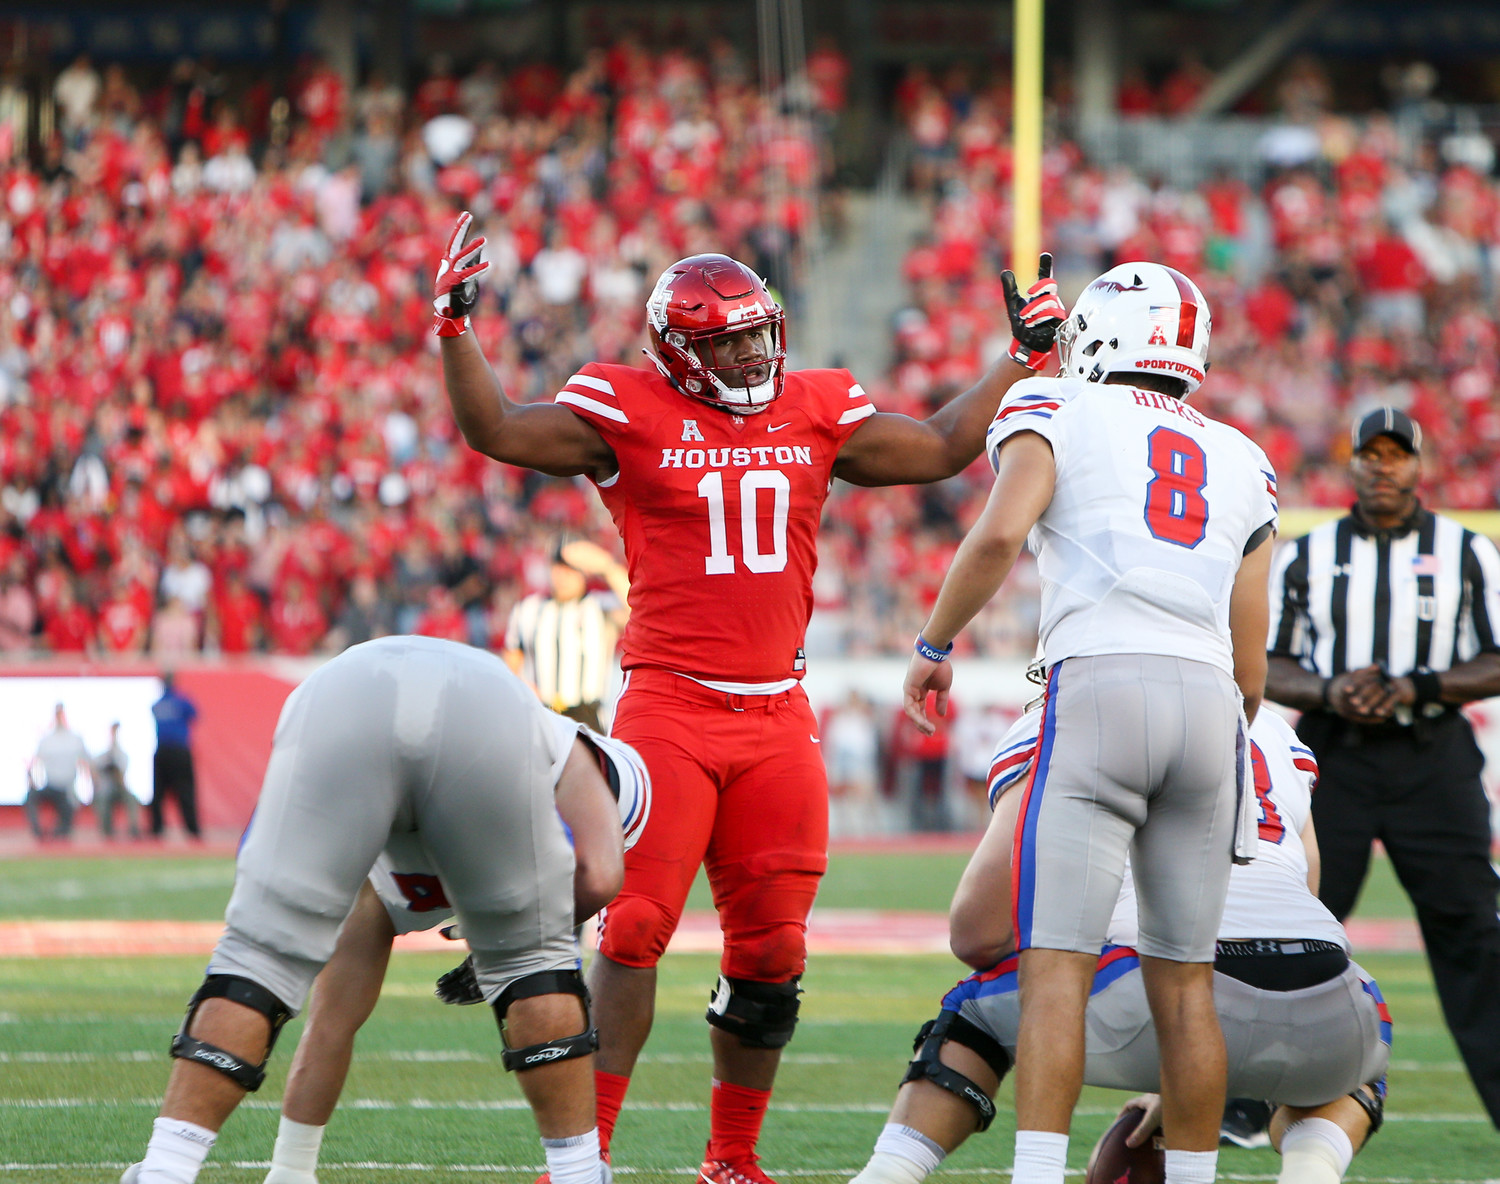 Ed Oliver had five  total tackles as Houston beat Rice 45-27 on Saturday afternoon.